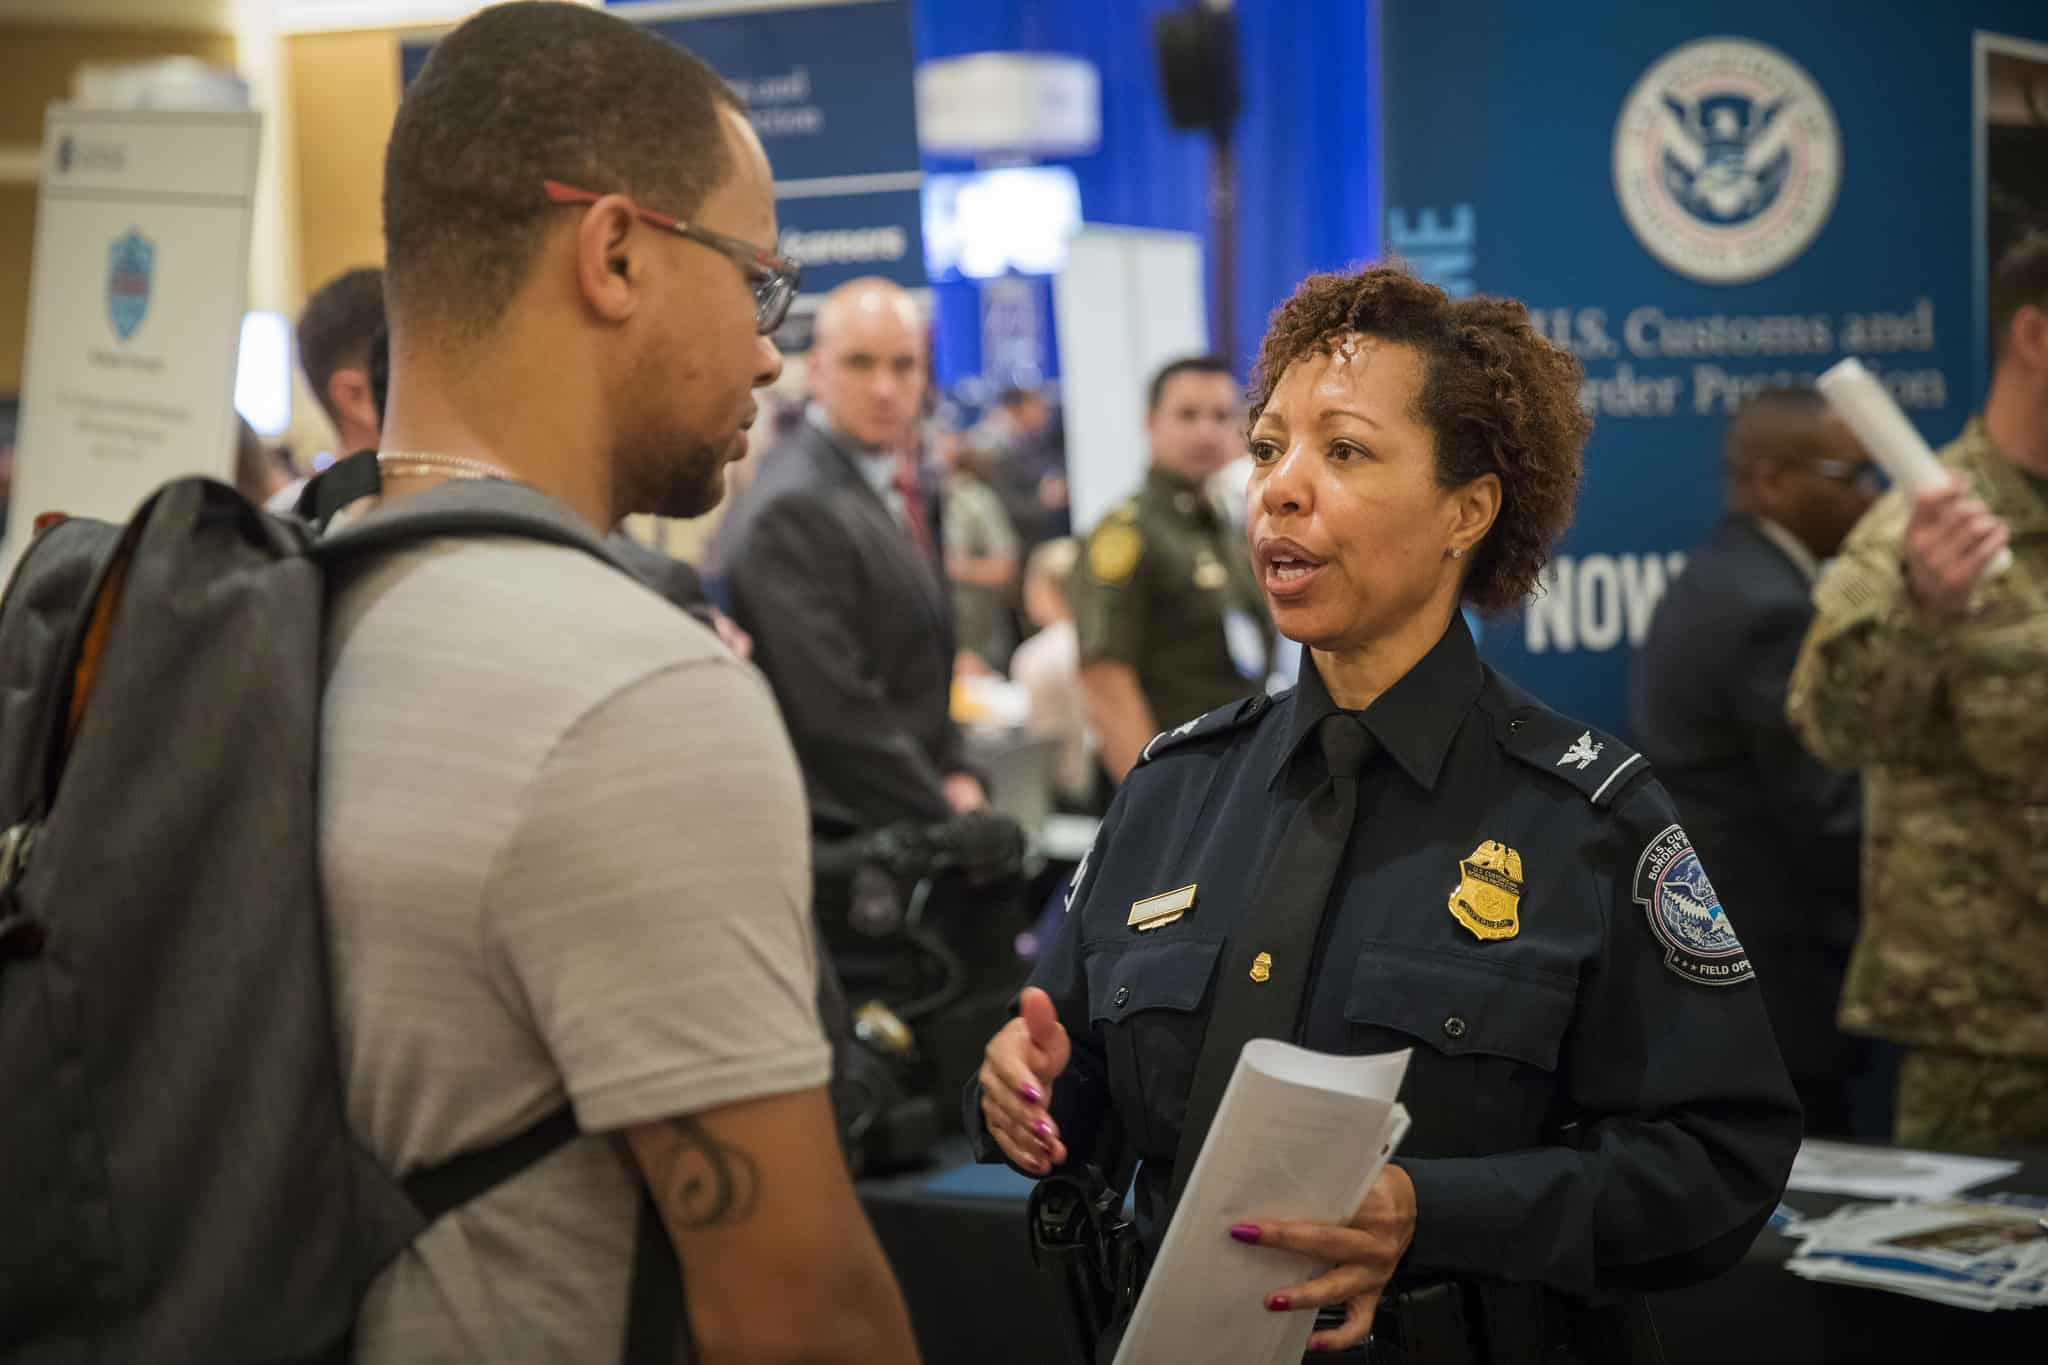 GAO Reports on CBP Progress, Challenges in Recruiting, Hires, Retention